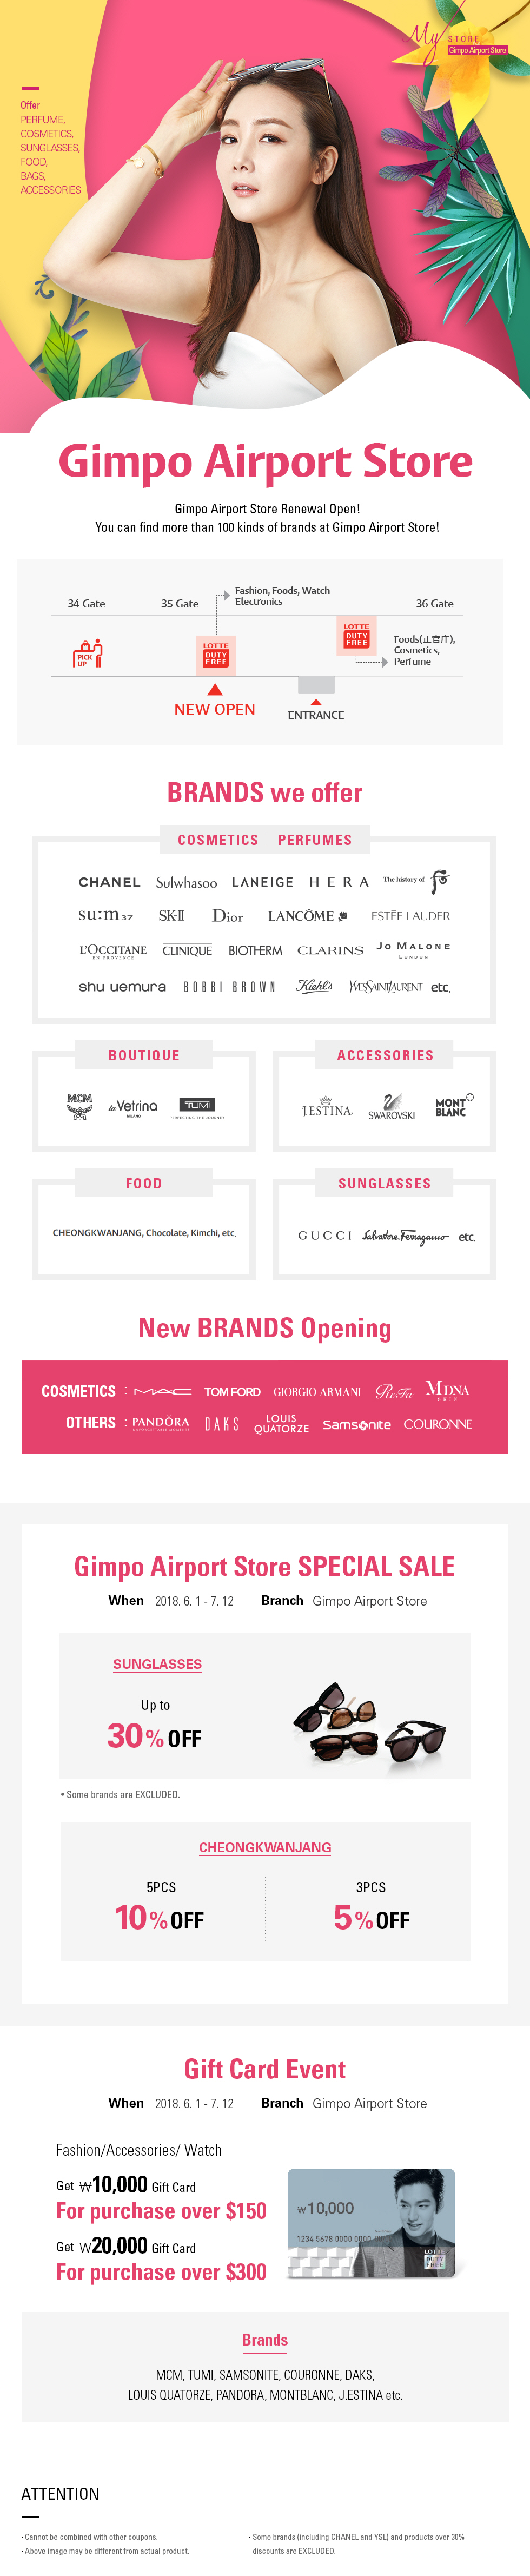 Gimpo Airport Store Renewal Open